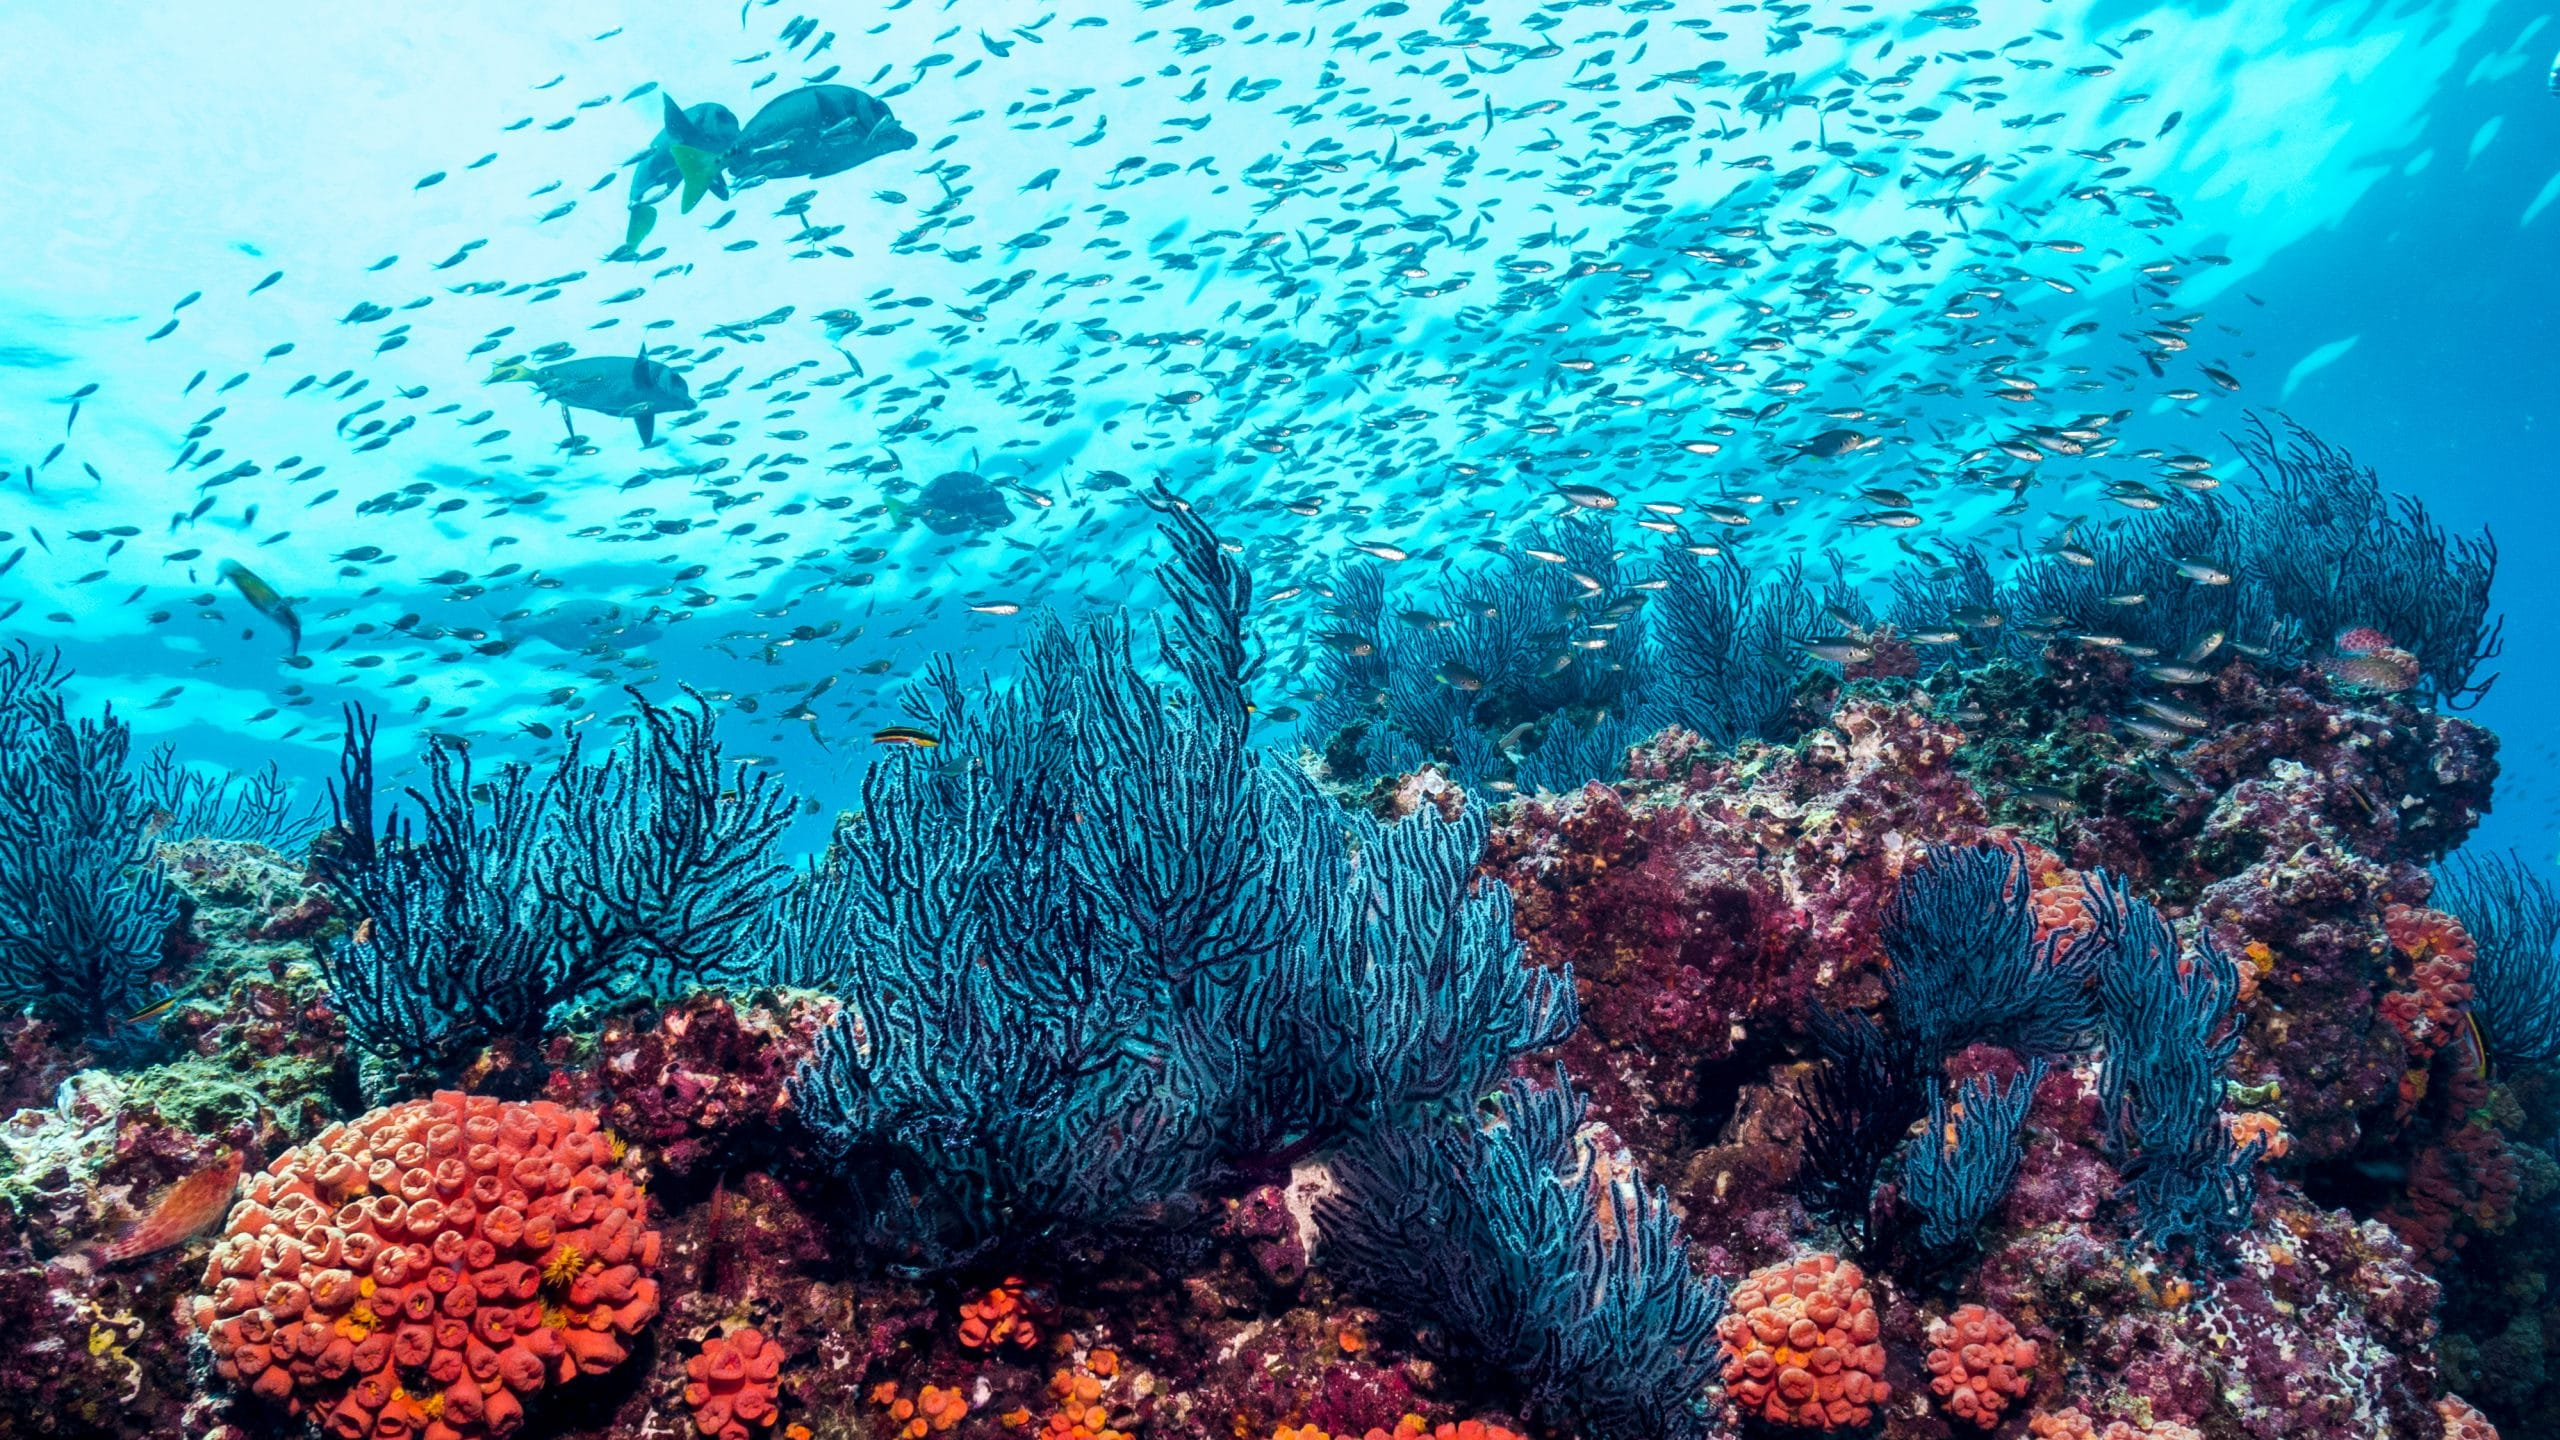 Colorful coral reef with red, orange & aqua marine features, looking up tp water's surface with a school of fish swimming above.